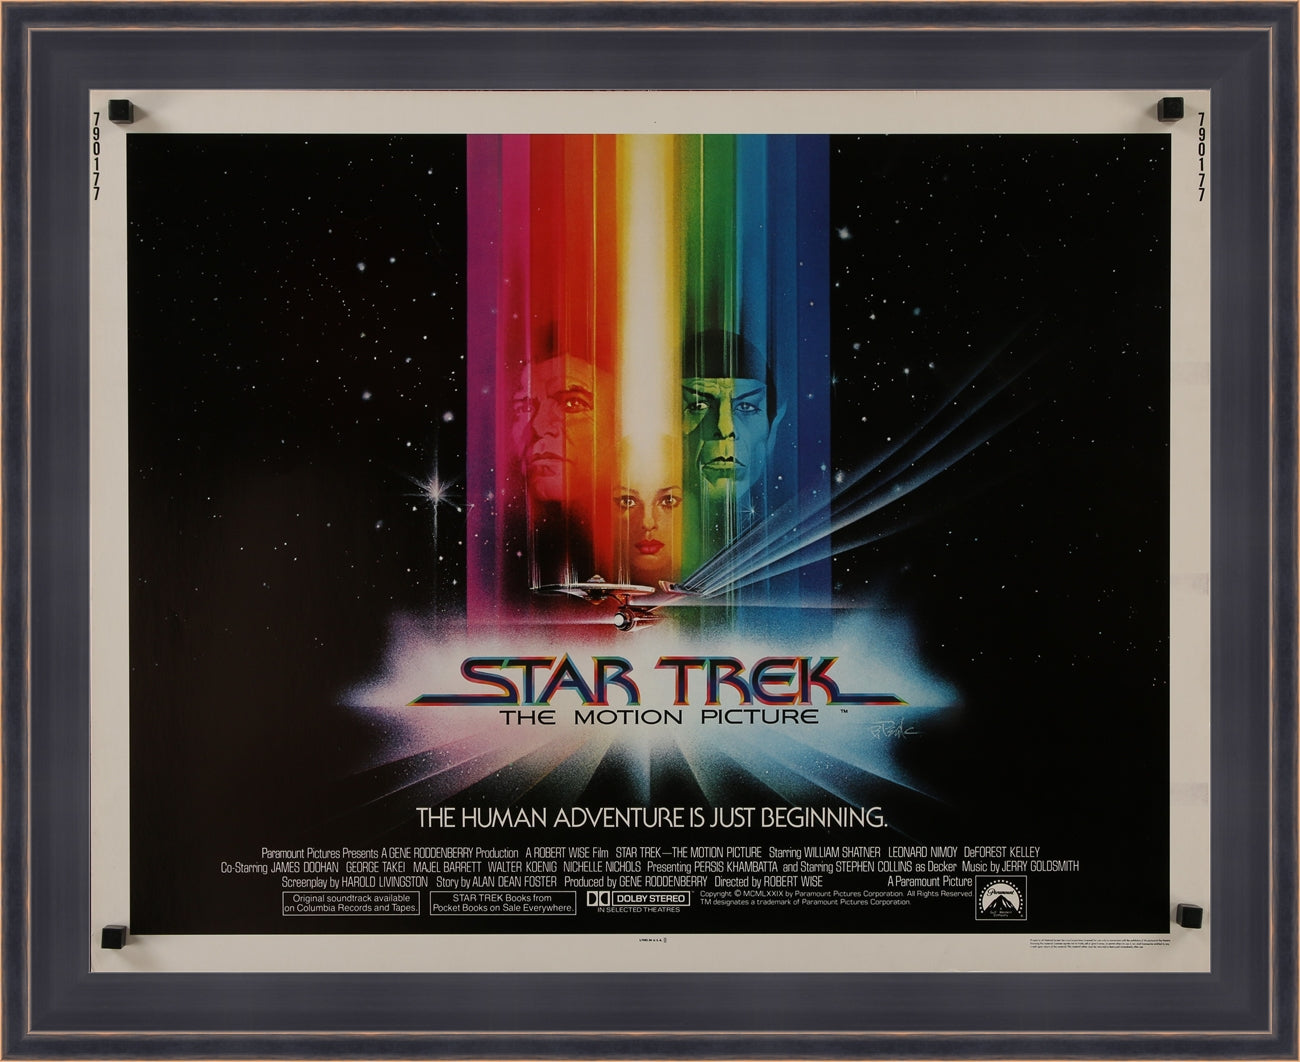 A guaranteed original US half sheet movie poster for Star Trek - The Motion Picture